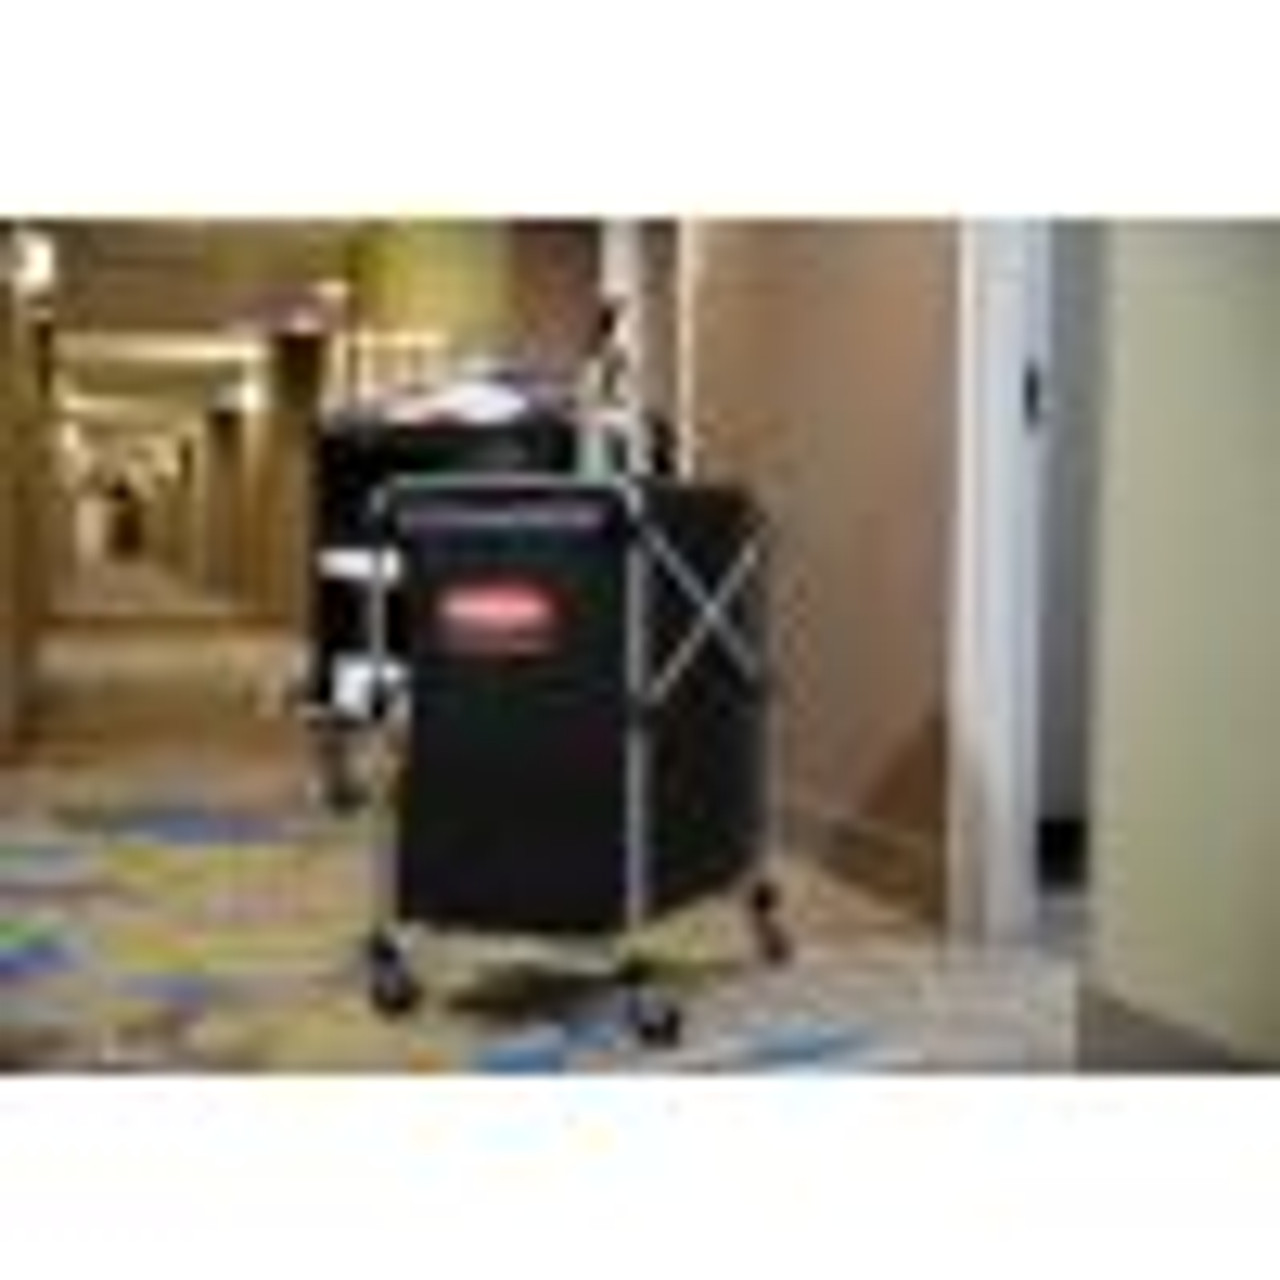 Use the X-cart for collecting linen around hotels, resorts of any facility looking for a better way to transport product like towels or even collect trash for recycling.